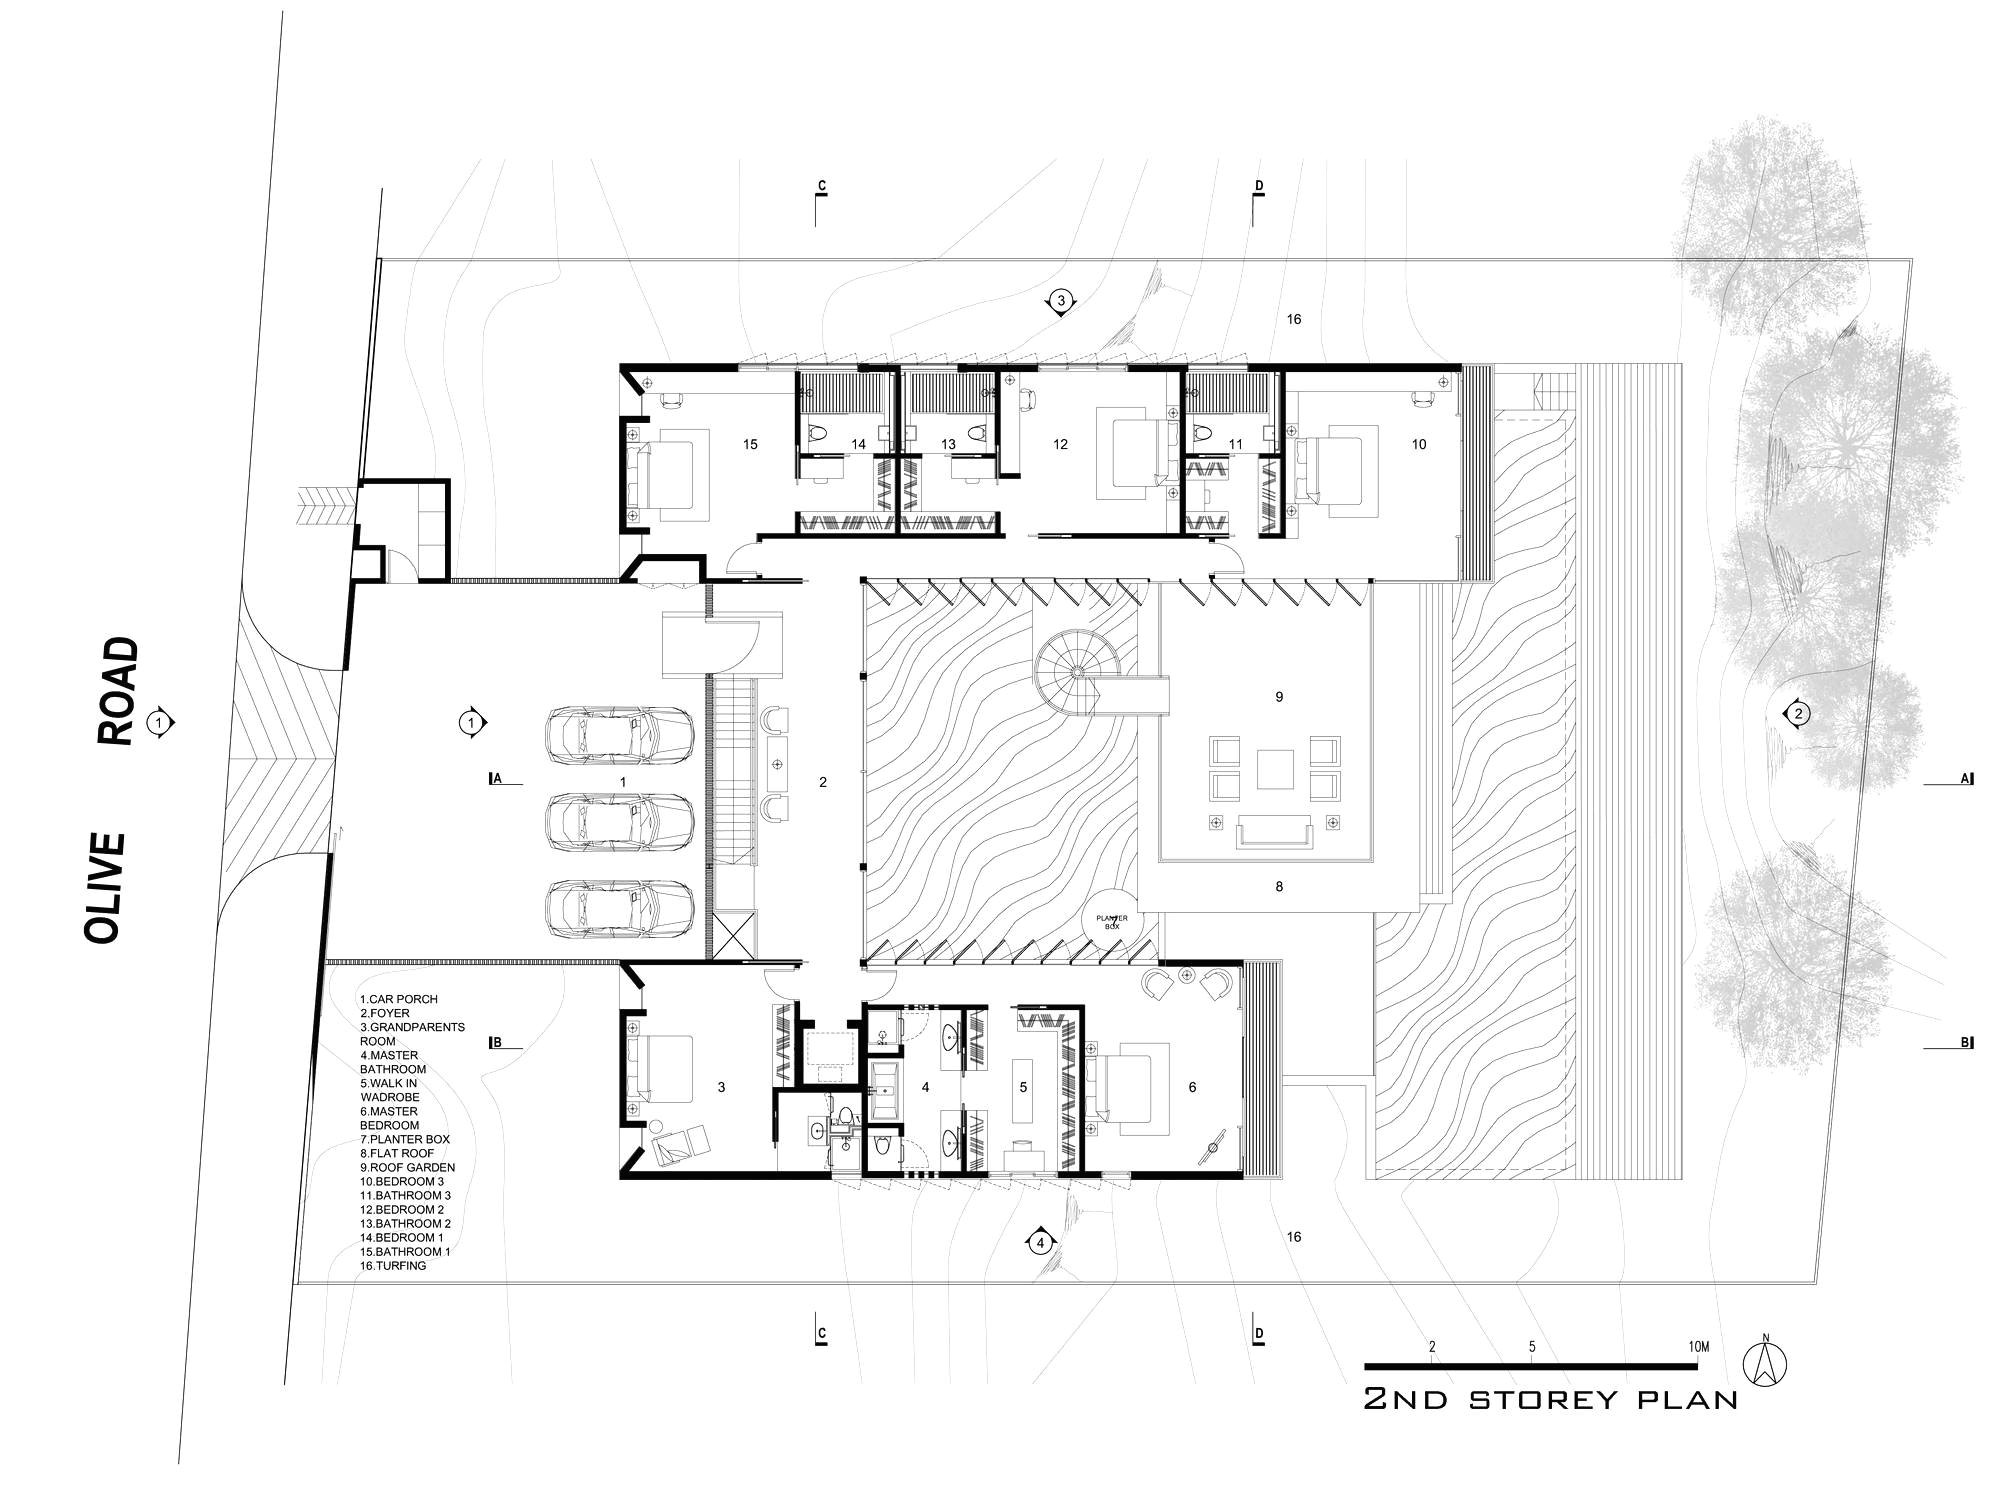 4 bedroom 3 bath house plans awesome 12 bedroom house plans luxury estate home floor plans